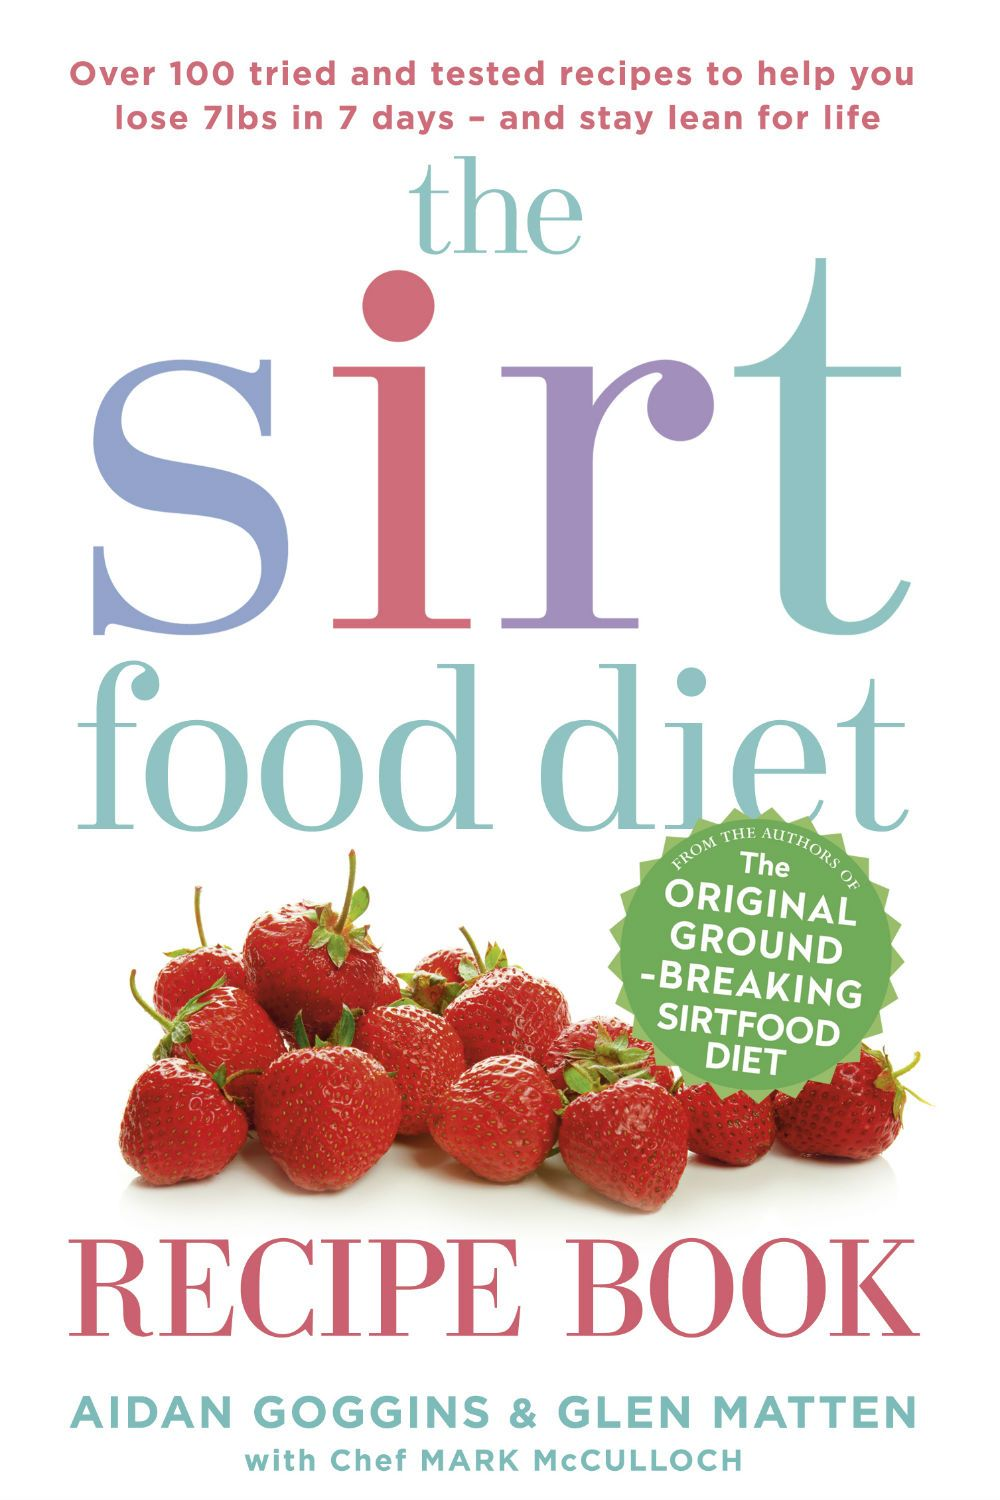 The Sirtfood Diet Everything You Need To Know Chocolate Included Diet Recipes Diet Dukan Diet